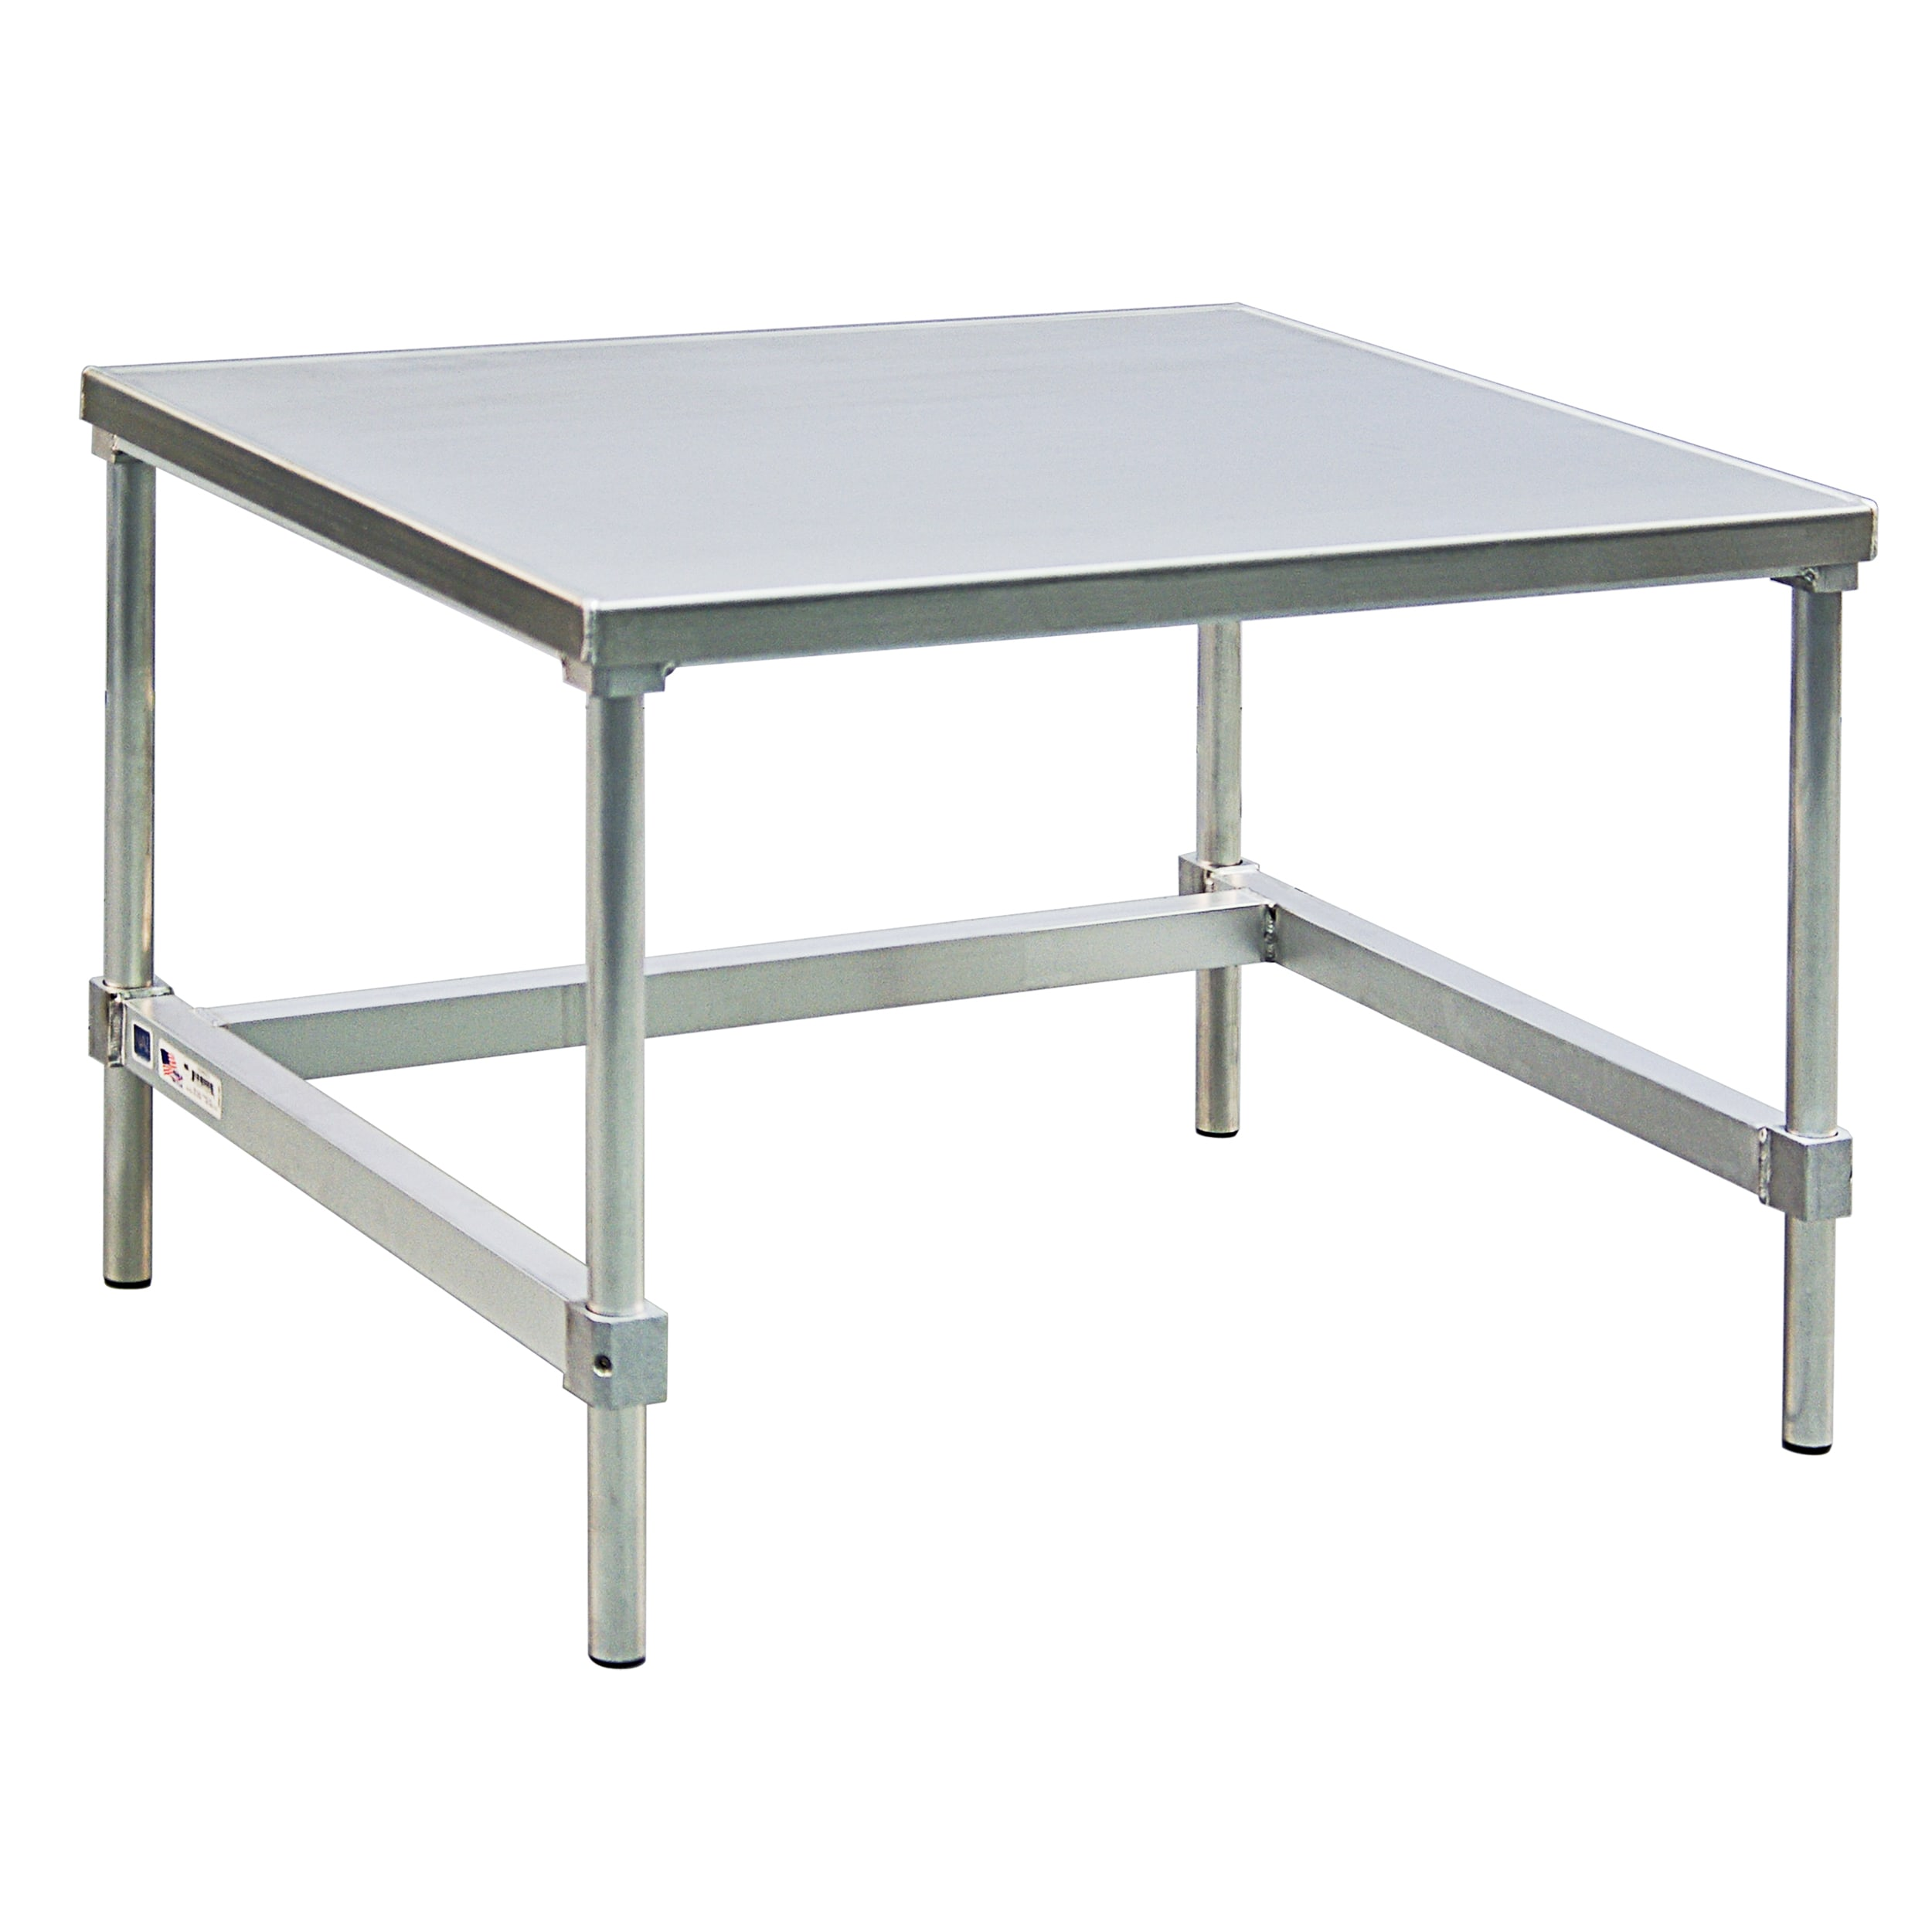 "New Age 12436GS 36"" x 24"" Stationary Equipment Stand for General Use, Open Base"